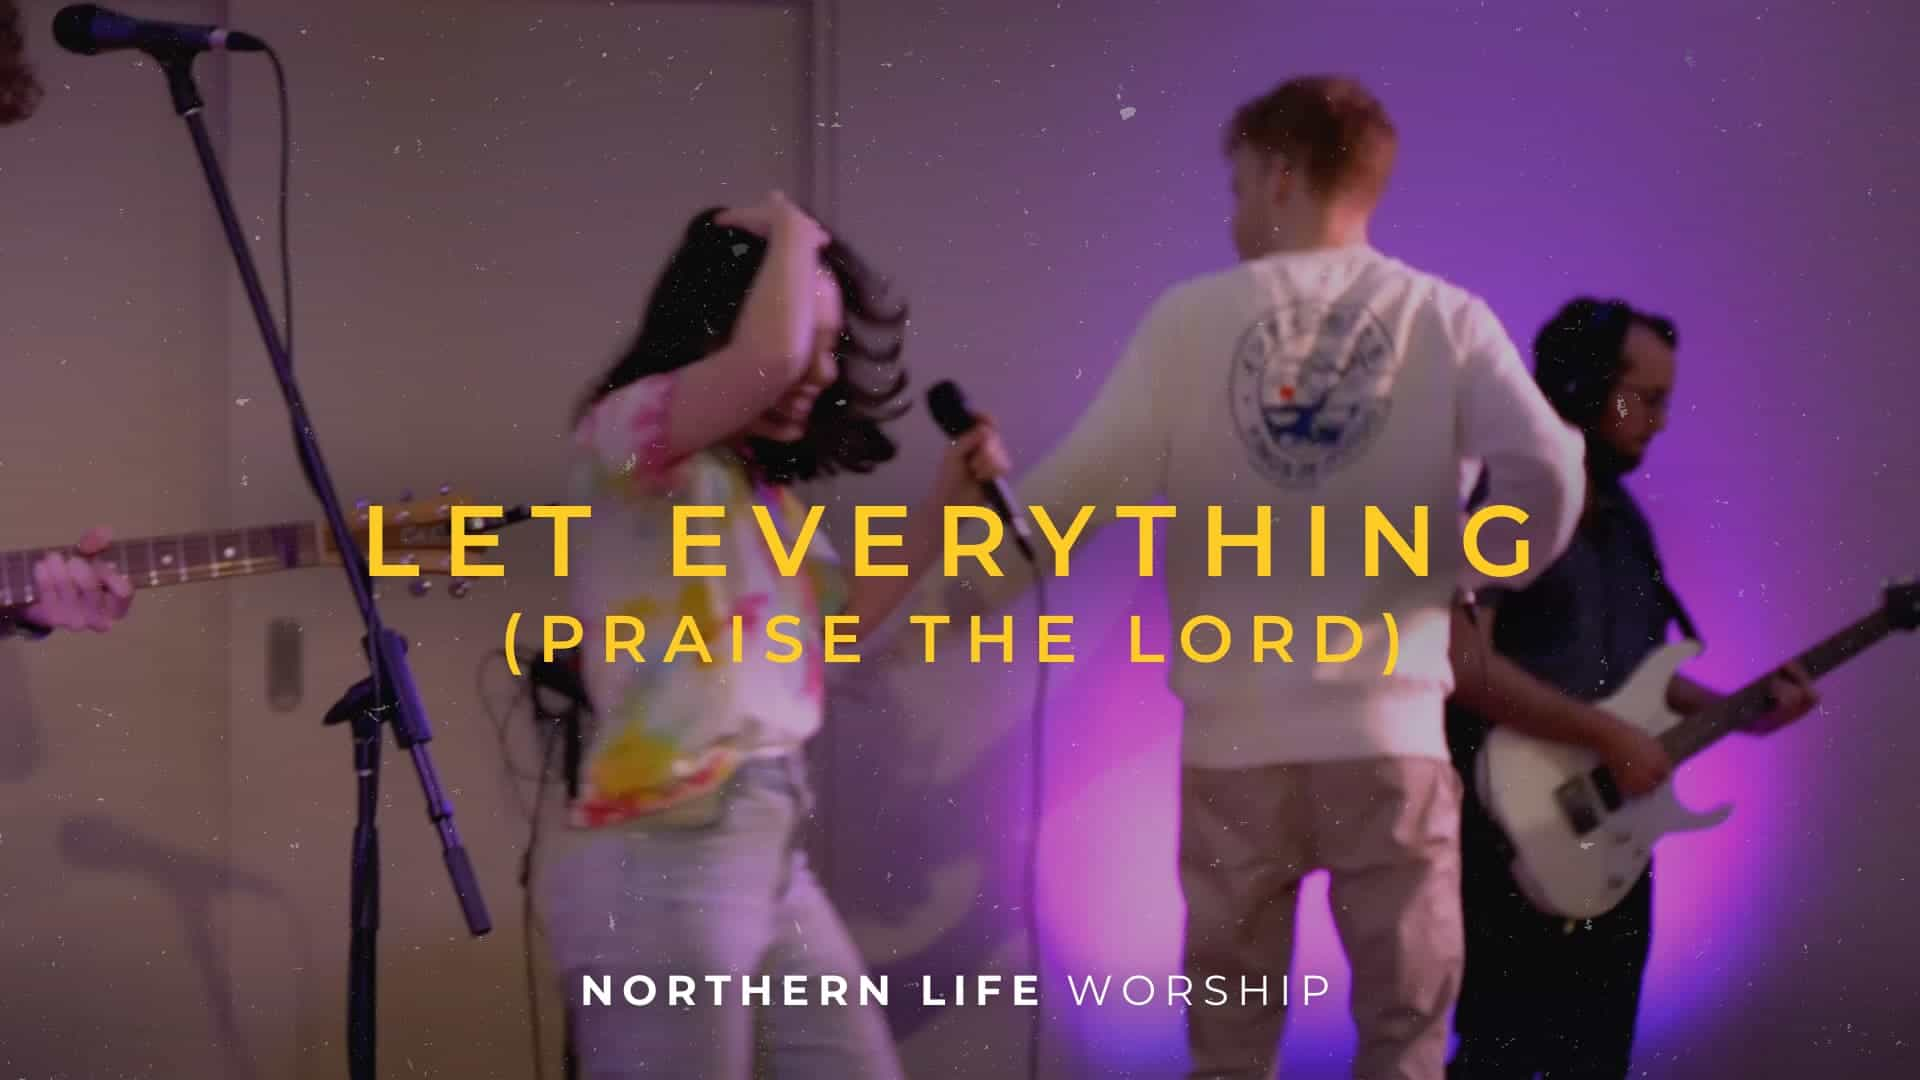 Let Everything (Praise the Lord)